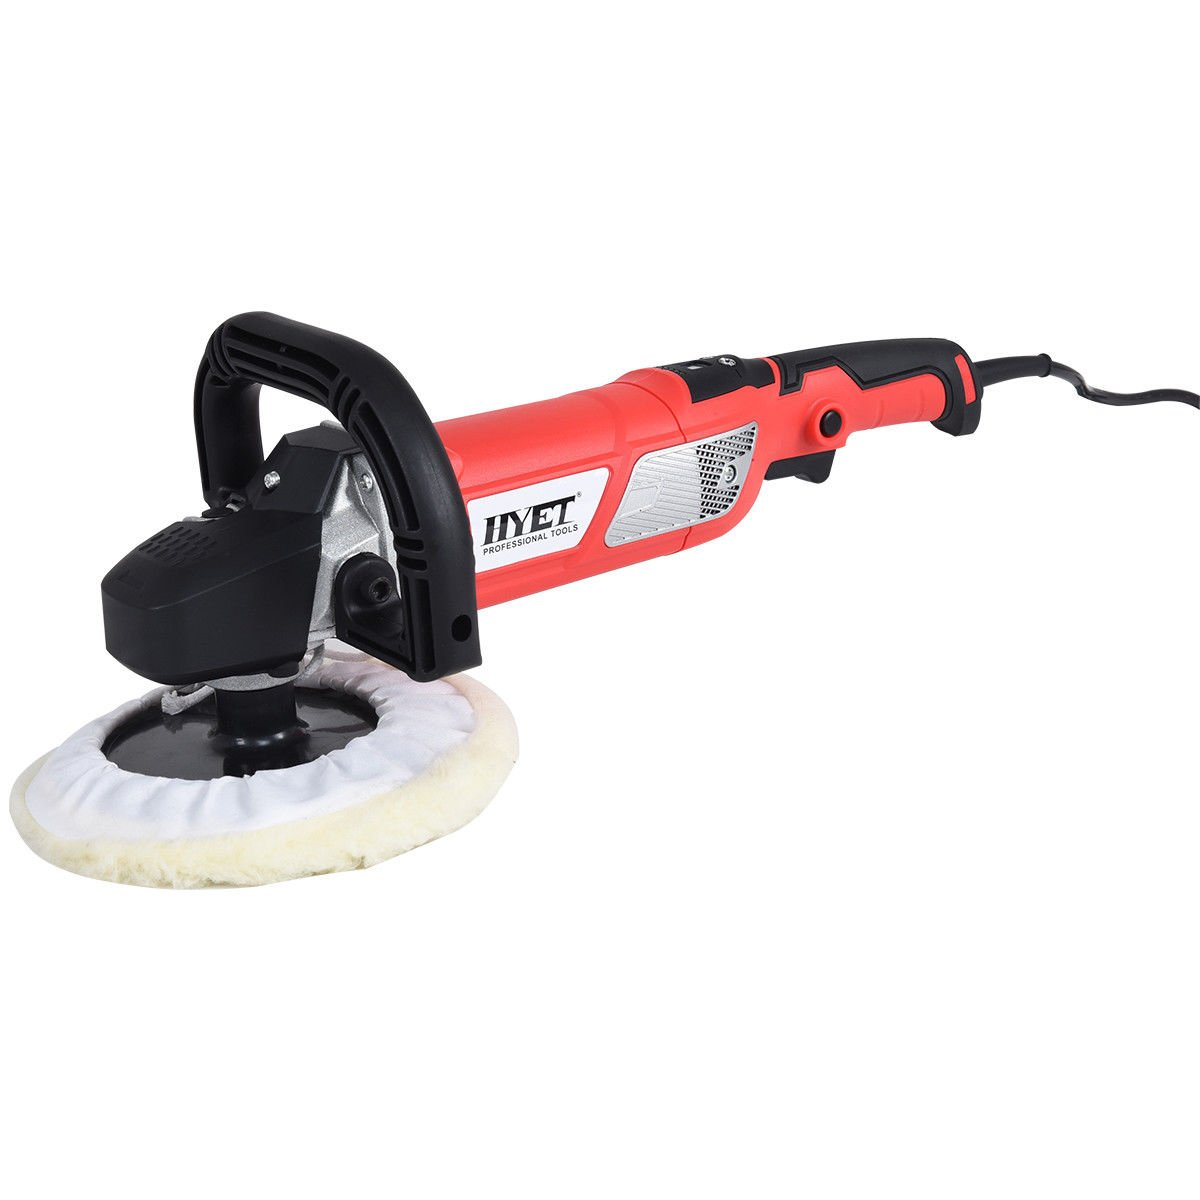 Globe House Products GHP 7'' Pad Size 1200W 0-4000RPM Variable Speed Electric Car Polisher with Case by Globe House Products (Image #1)